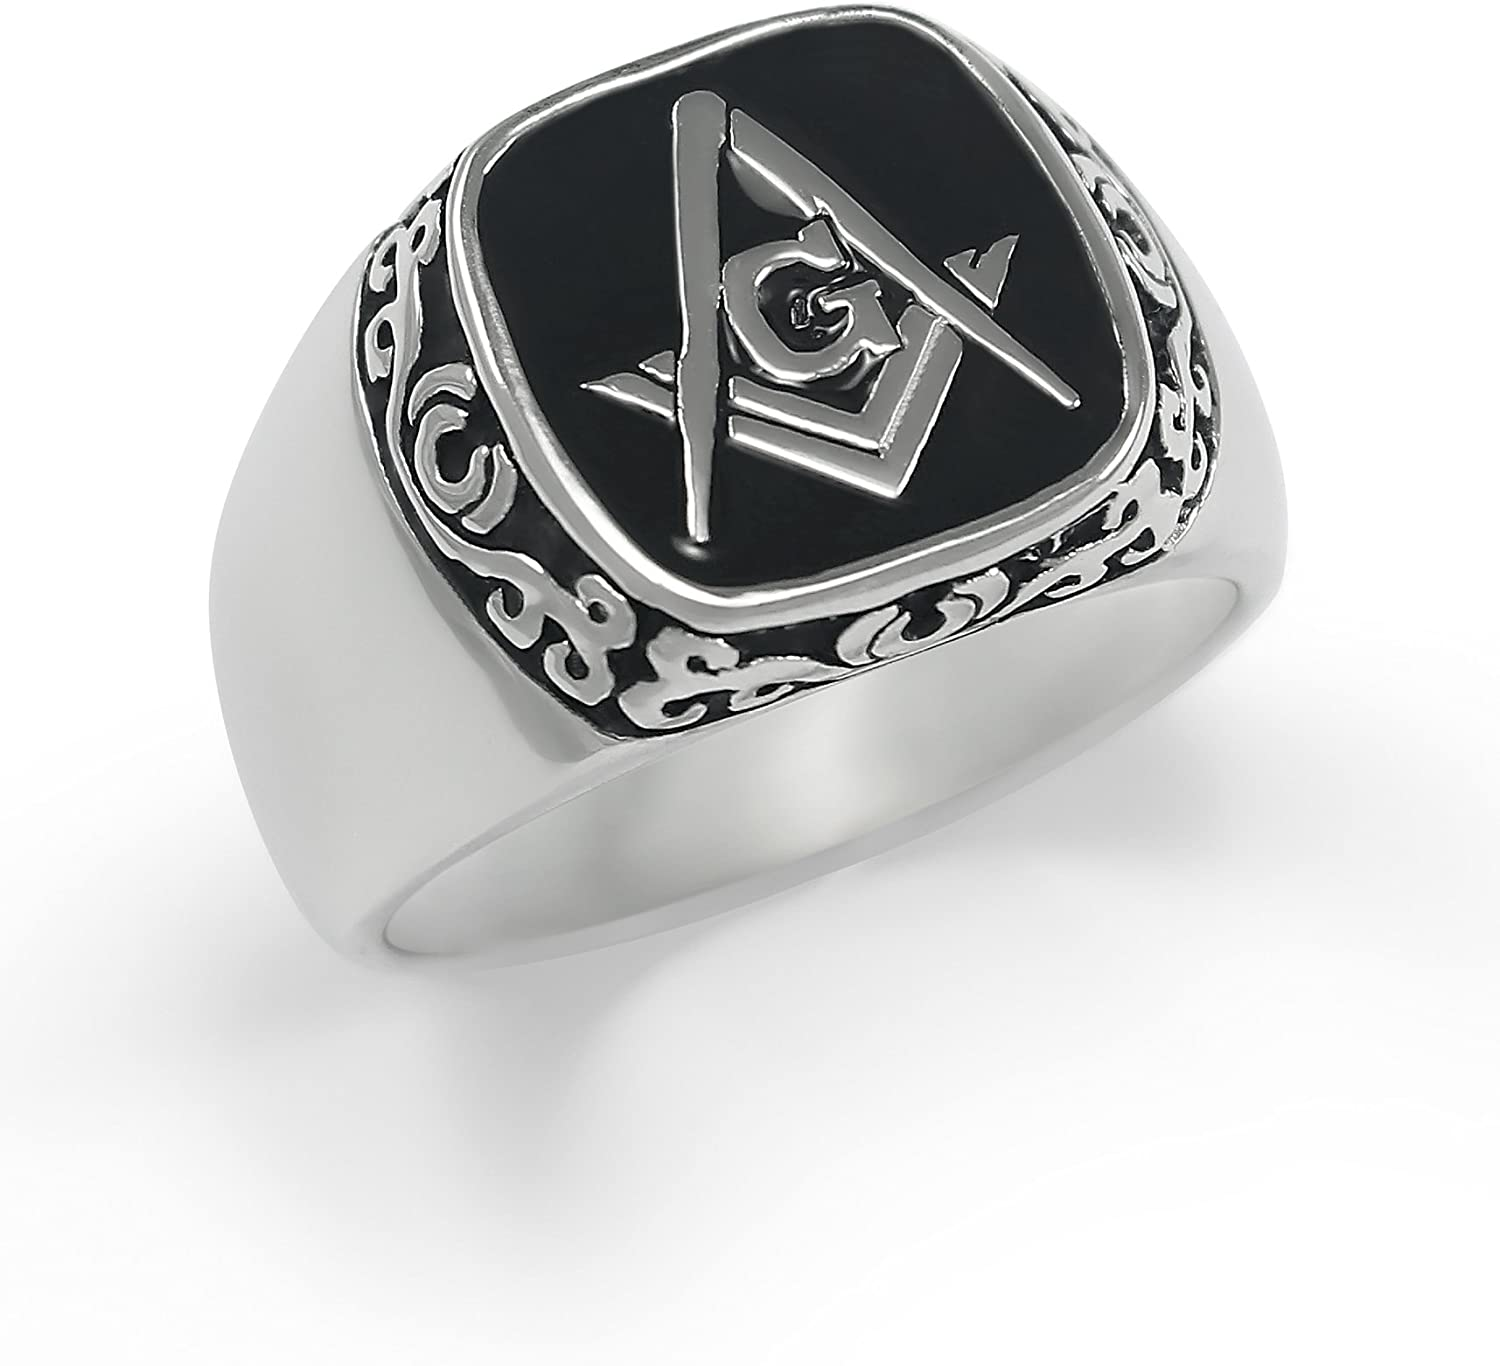 Sterling Silver with Square and Compass /& Black Enamel The Collegiate Standard Masonic Ring